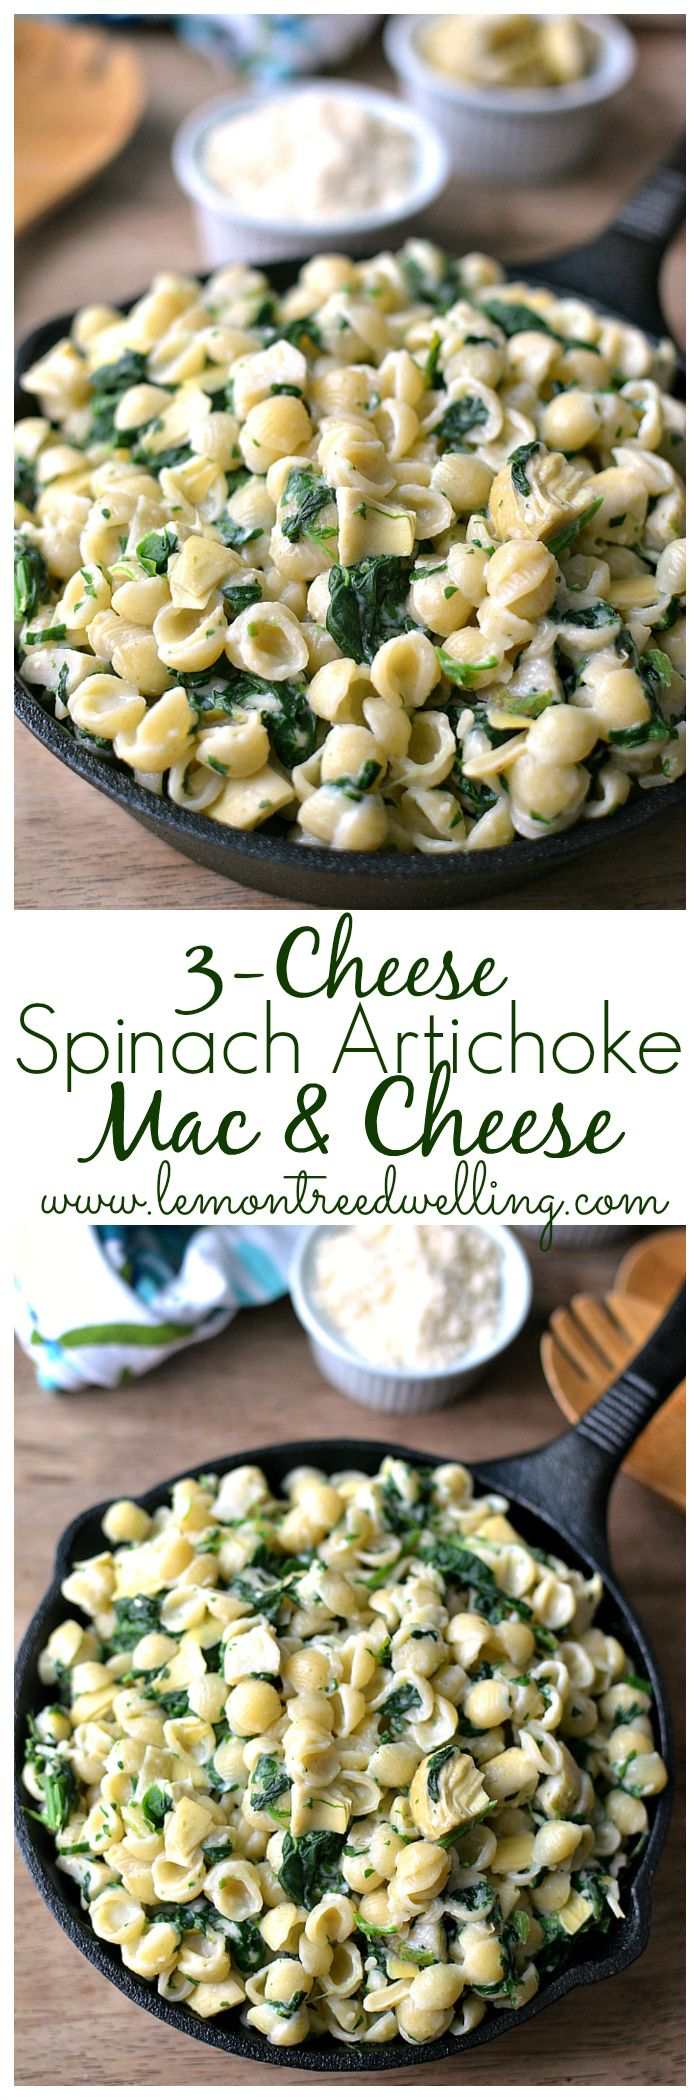 3-Cheese Spinach Artichoke Mac & Cheese | Lemon Tree Dwelling